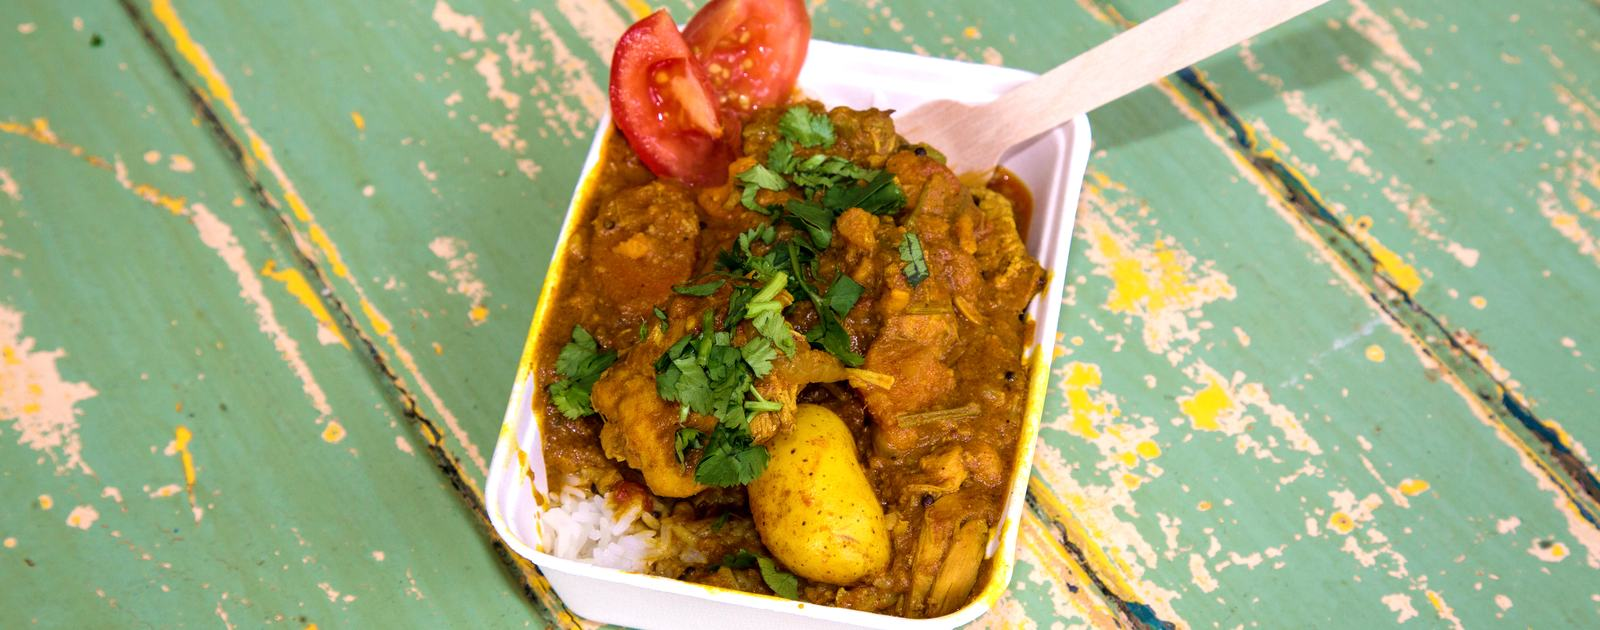 Photo of a chicken curry and rice served by The Curry Shack at Southbank Centre Food Market